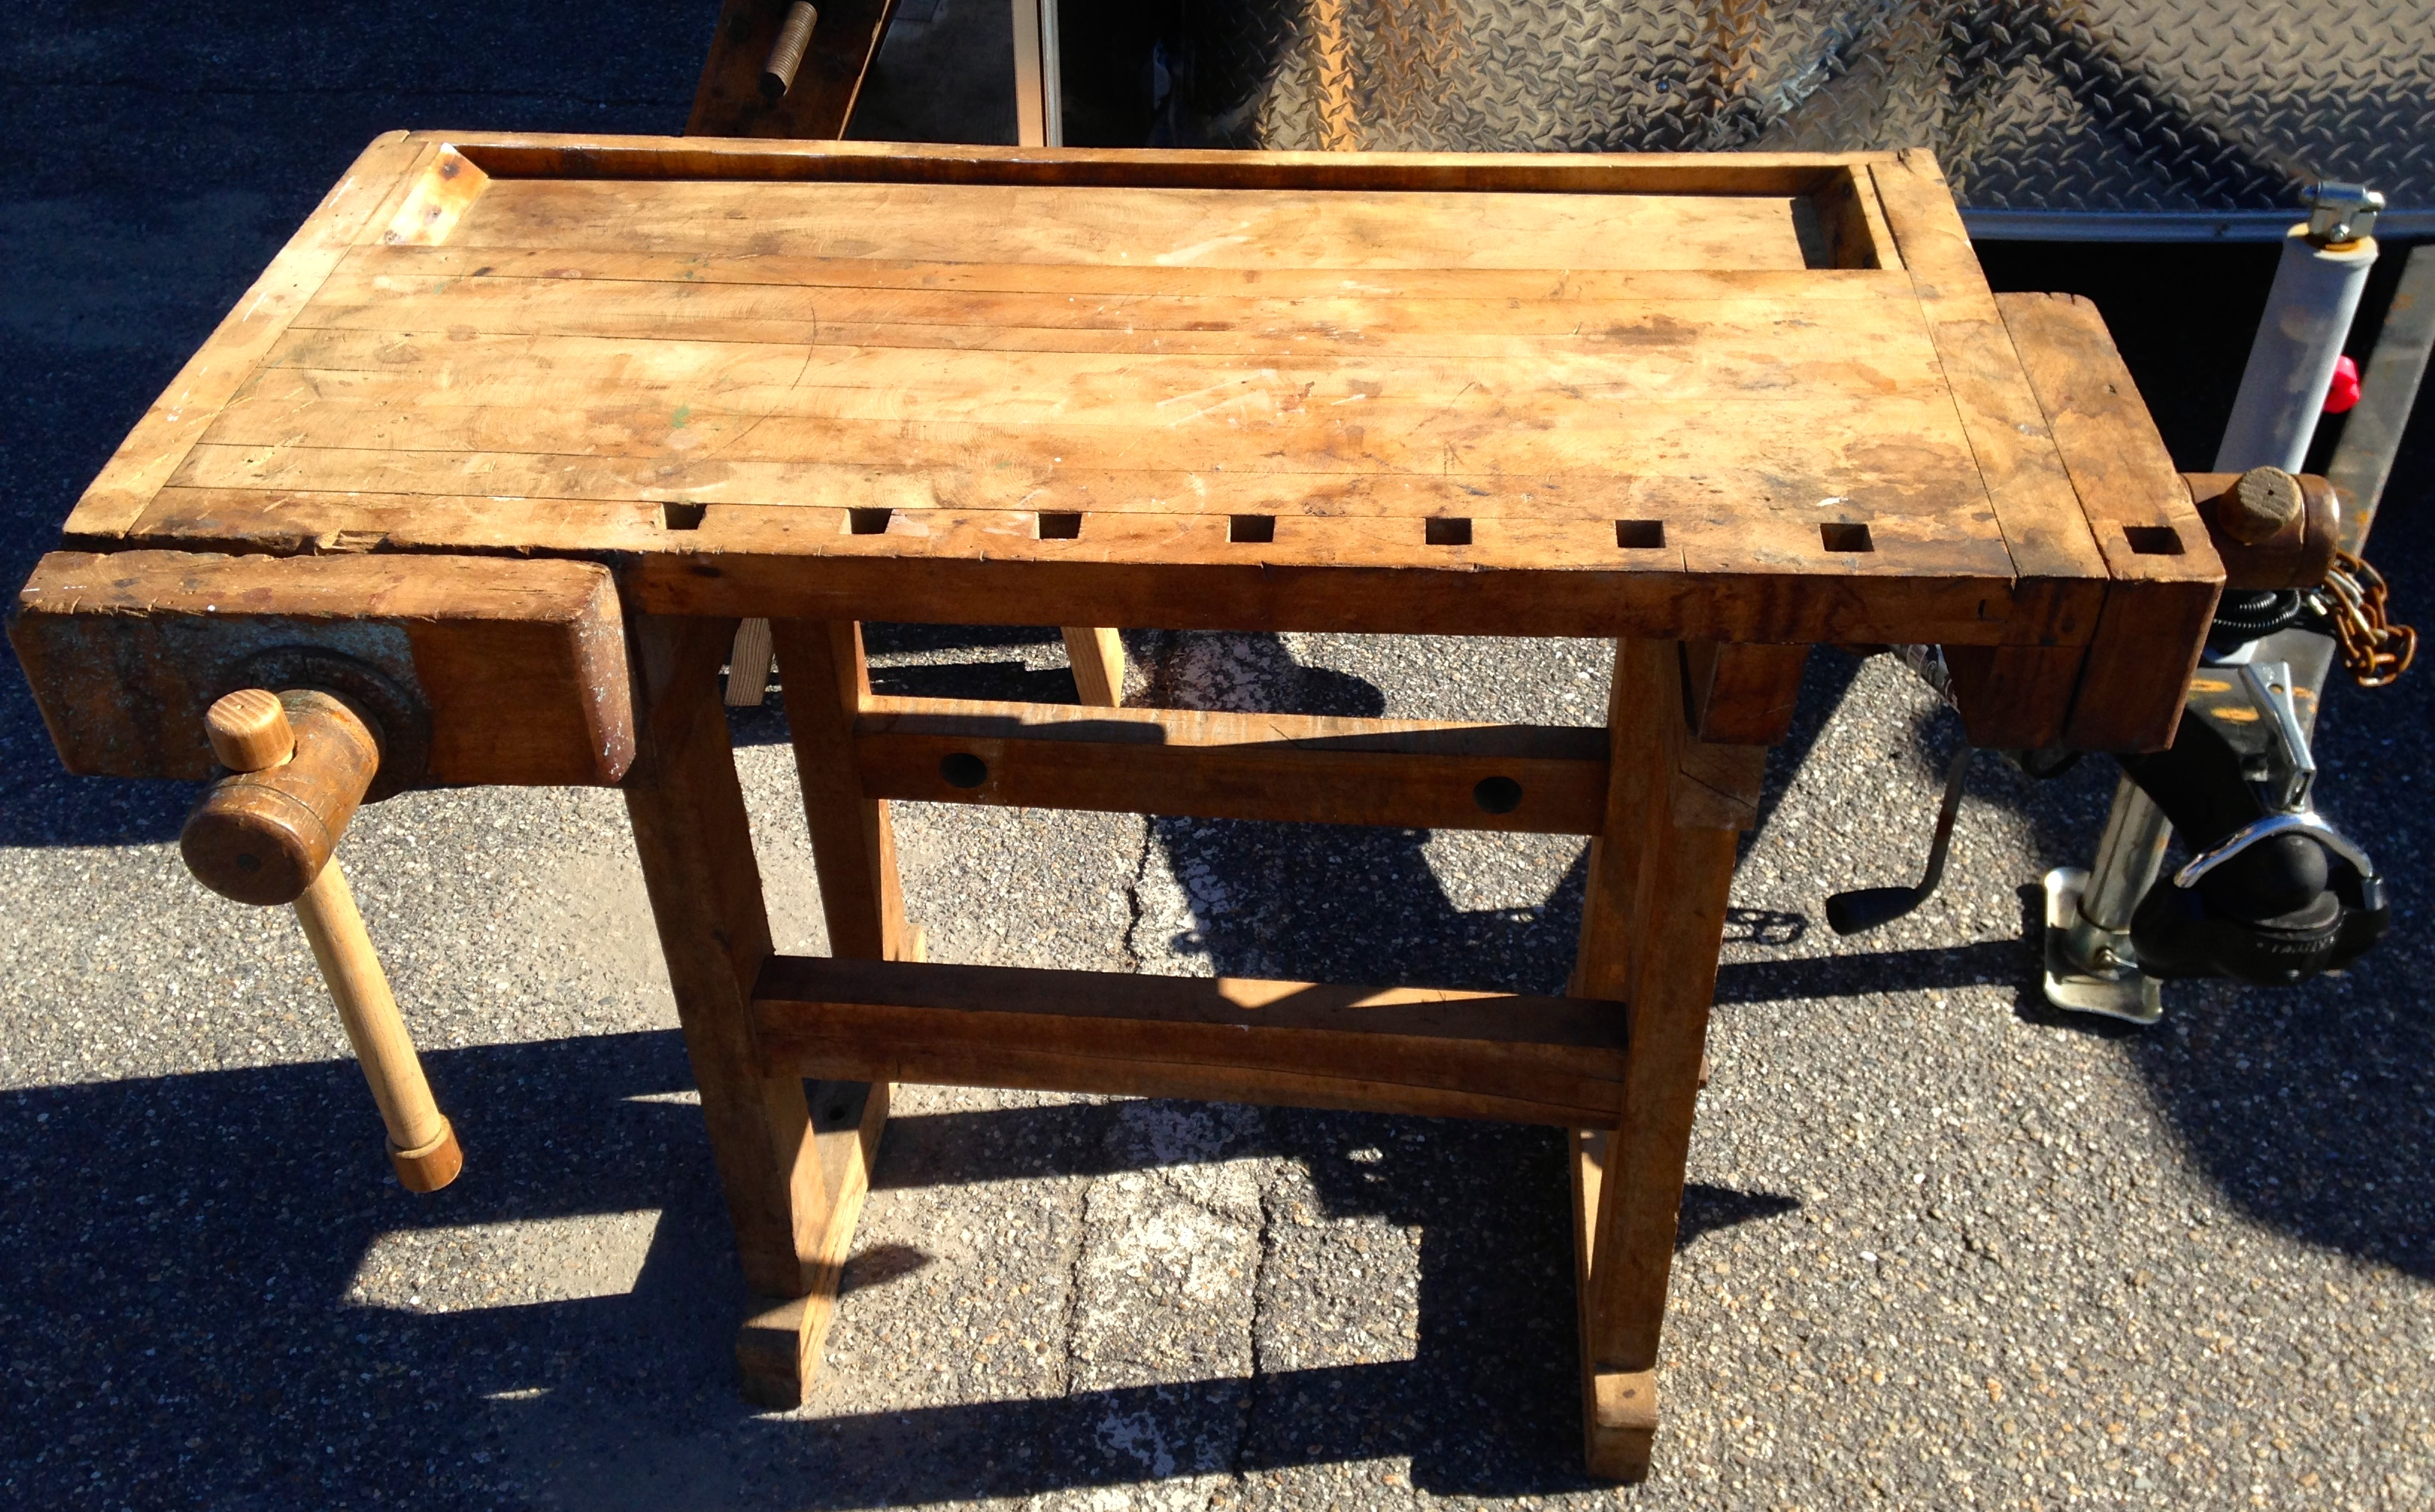 Woodworking workbench plans and supplies list plans pdf for Outdoor furniture zanesville ohio